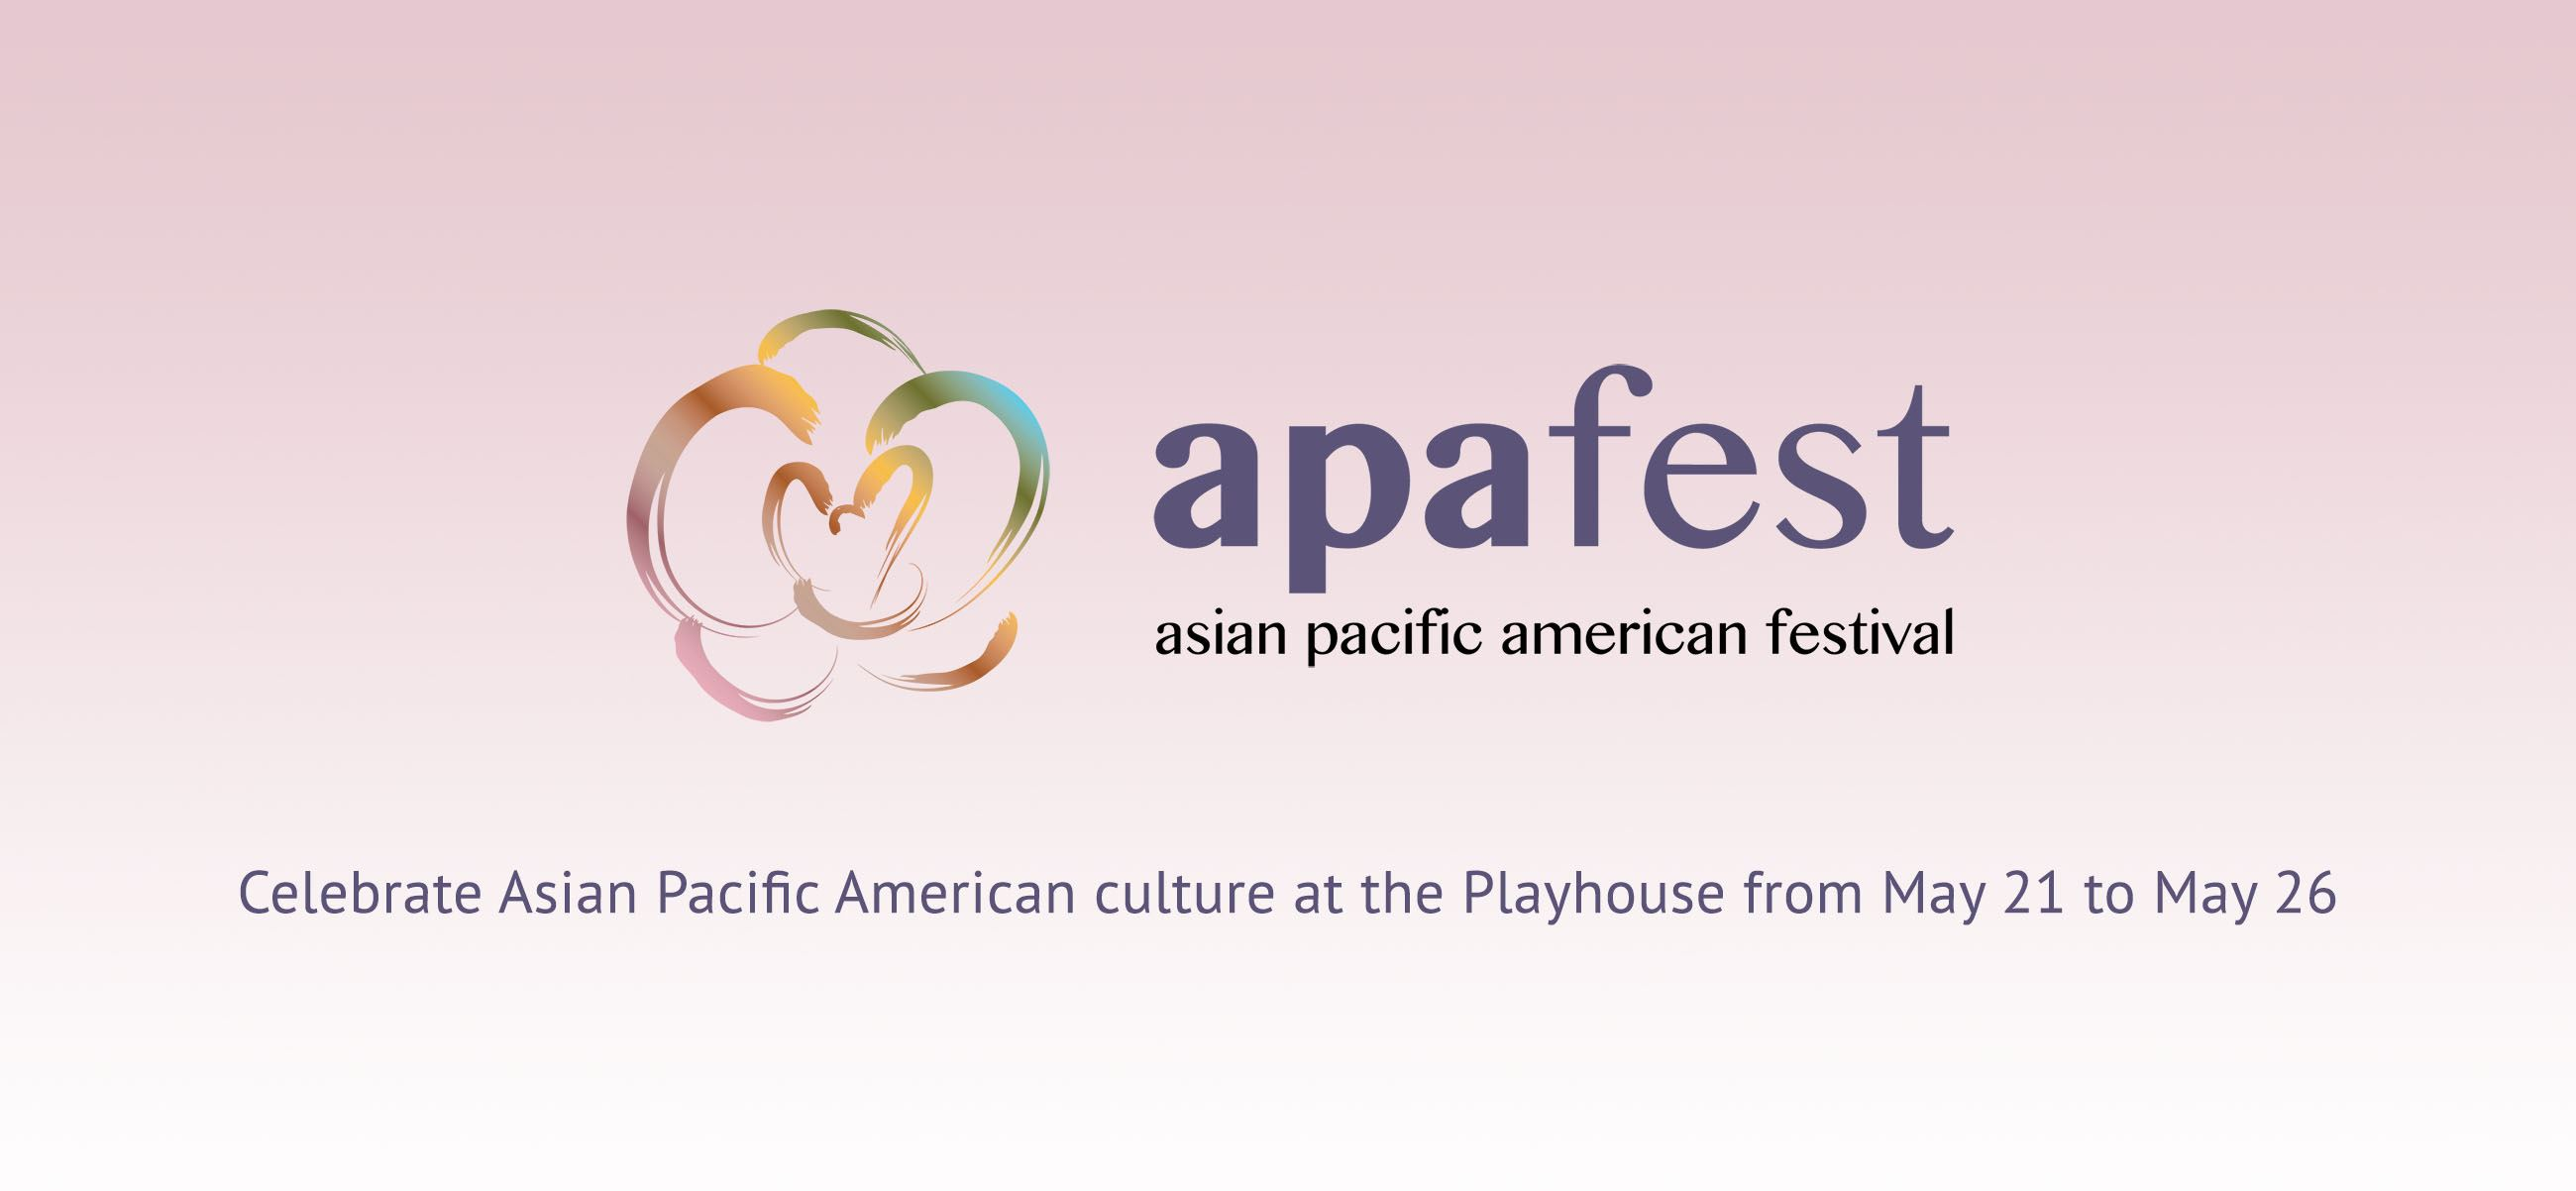 APAFEST - Celebrate Asian Pacific American culture at the Playhouse from May 21 to May 26